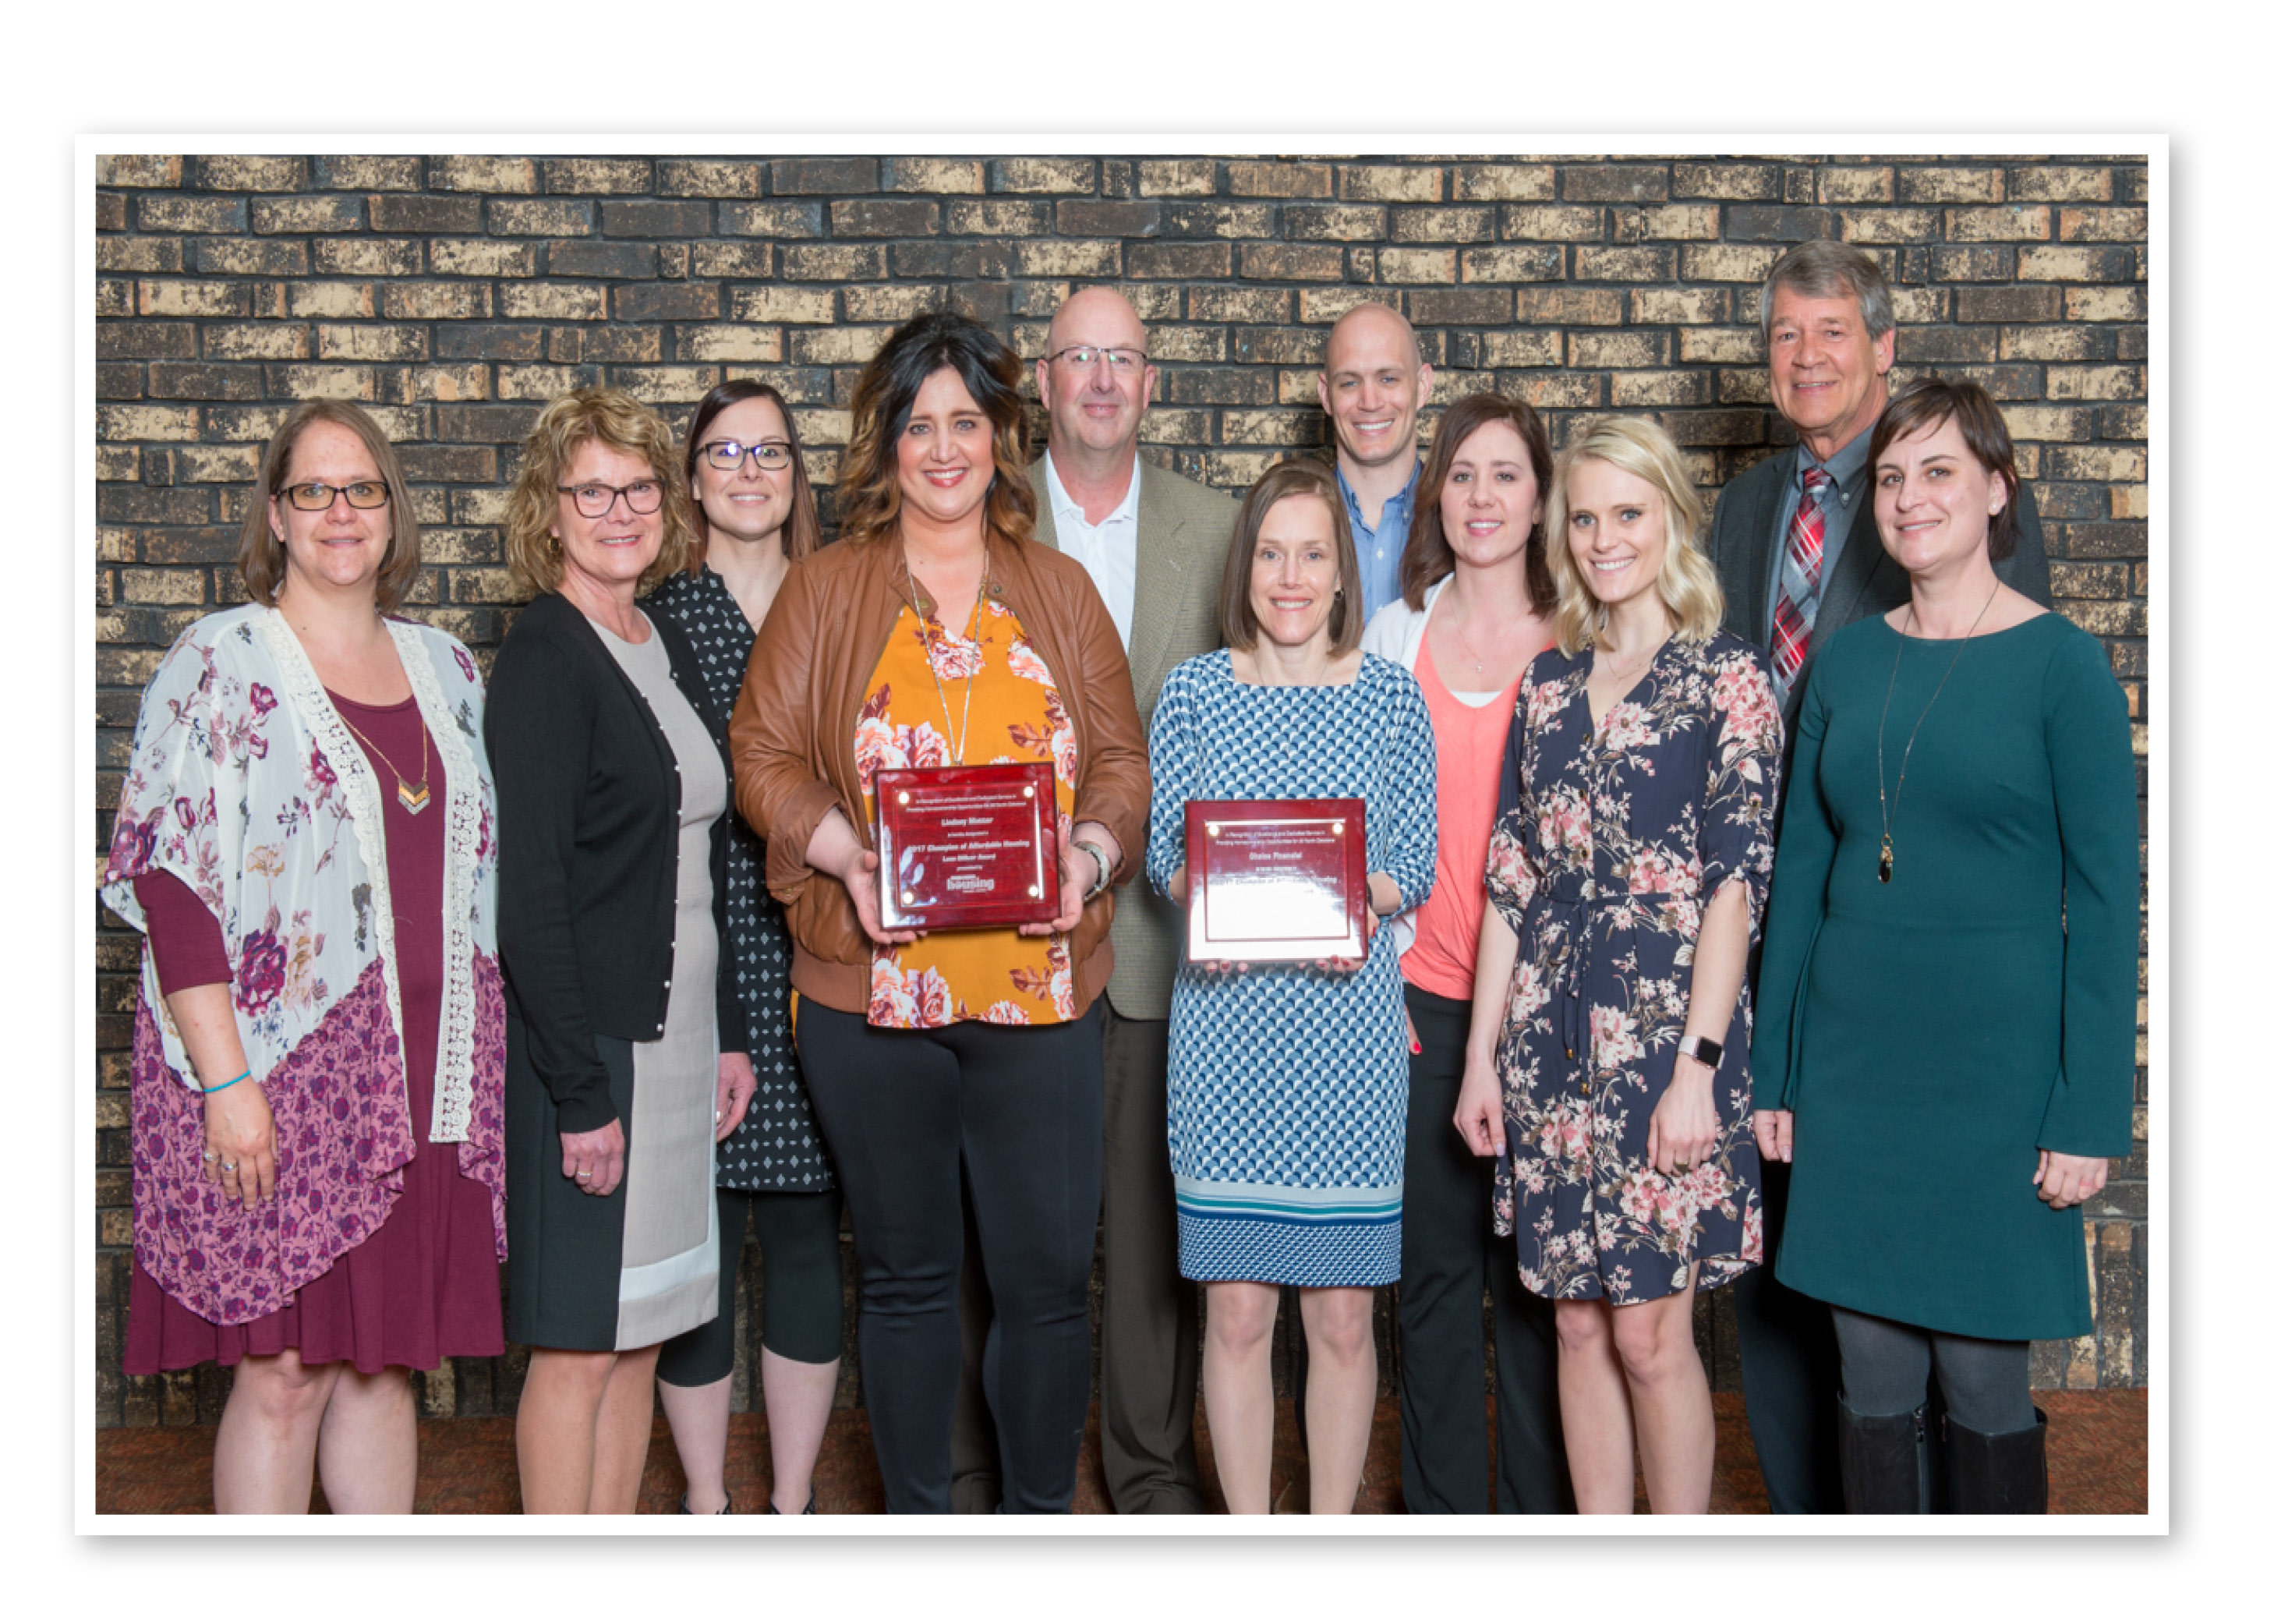 Representatives from the Choice mortgage team accepting the Champion award. (left to right) Shawna Eckroth, Jolene Kline (Executive Director of NDHFA), Tosha Steinwand, Lindsey Matter, Greg Schwab, Susie Franklin, Blair Sandy, Terri Mollman, Shania Gross, Wayne Stenehjem (ND Attorney General), Celeste Burke